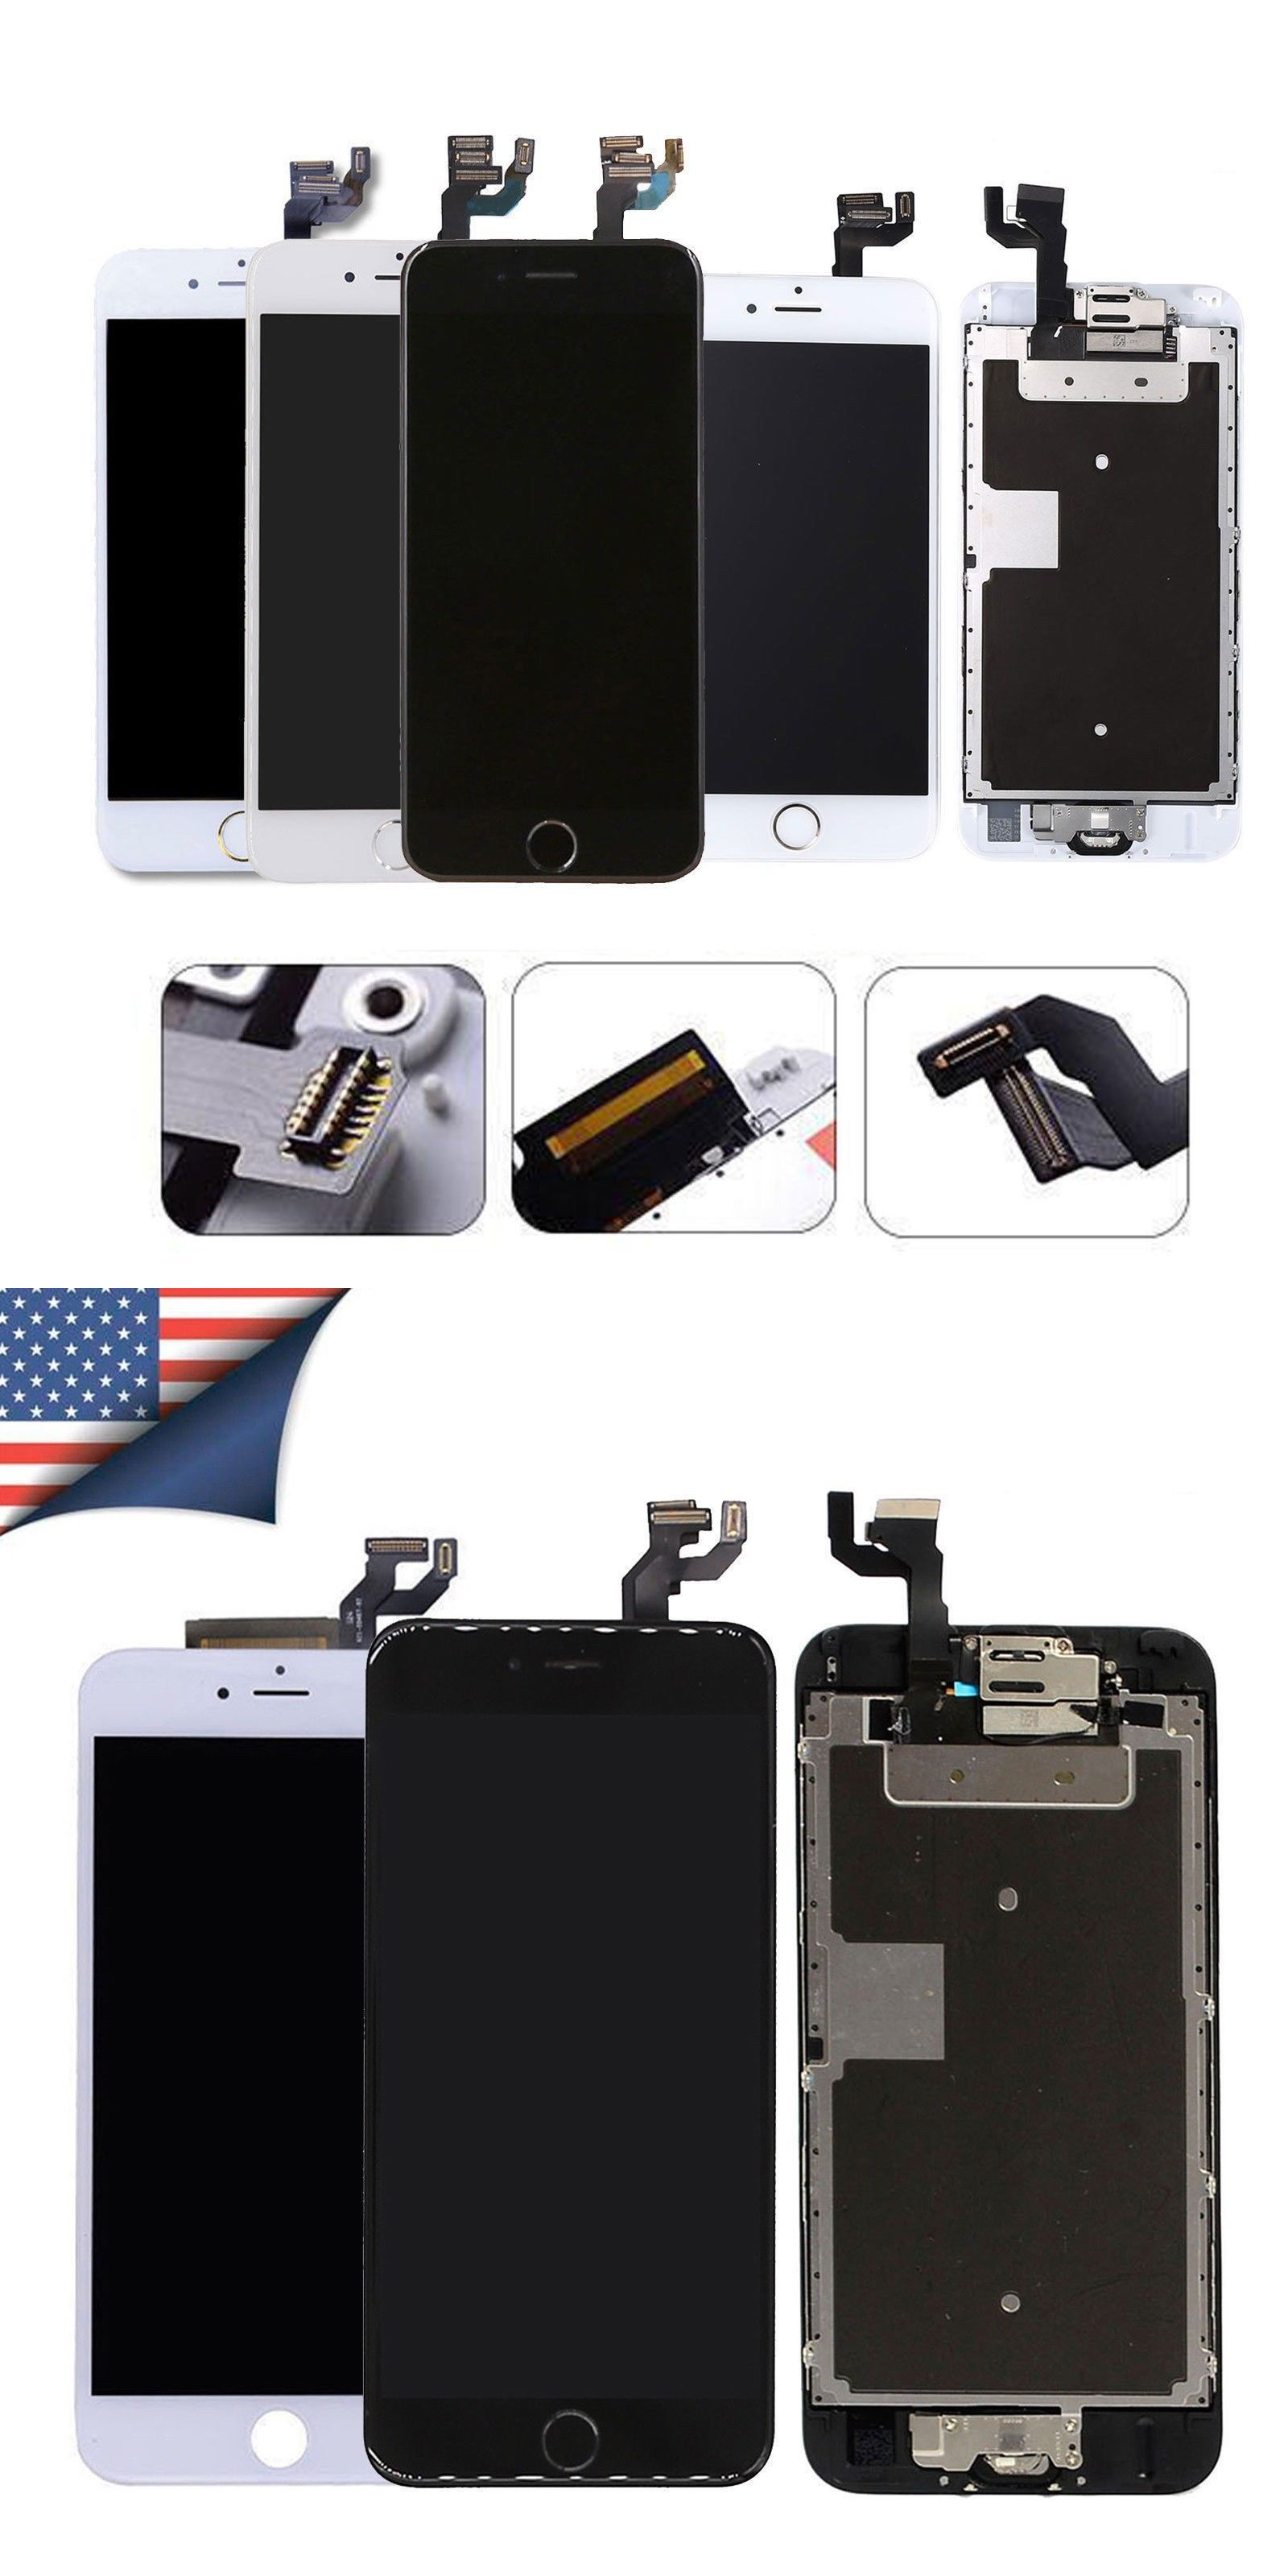 lowest price 4f814 642c5 Cell Phone and Smartphone Parts 43304: New Iphone 6 6S Plus 6S Lcd ...